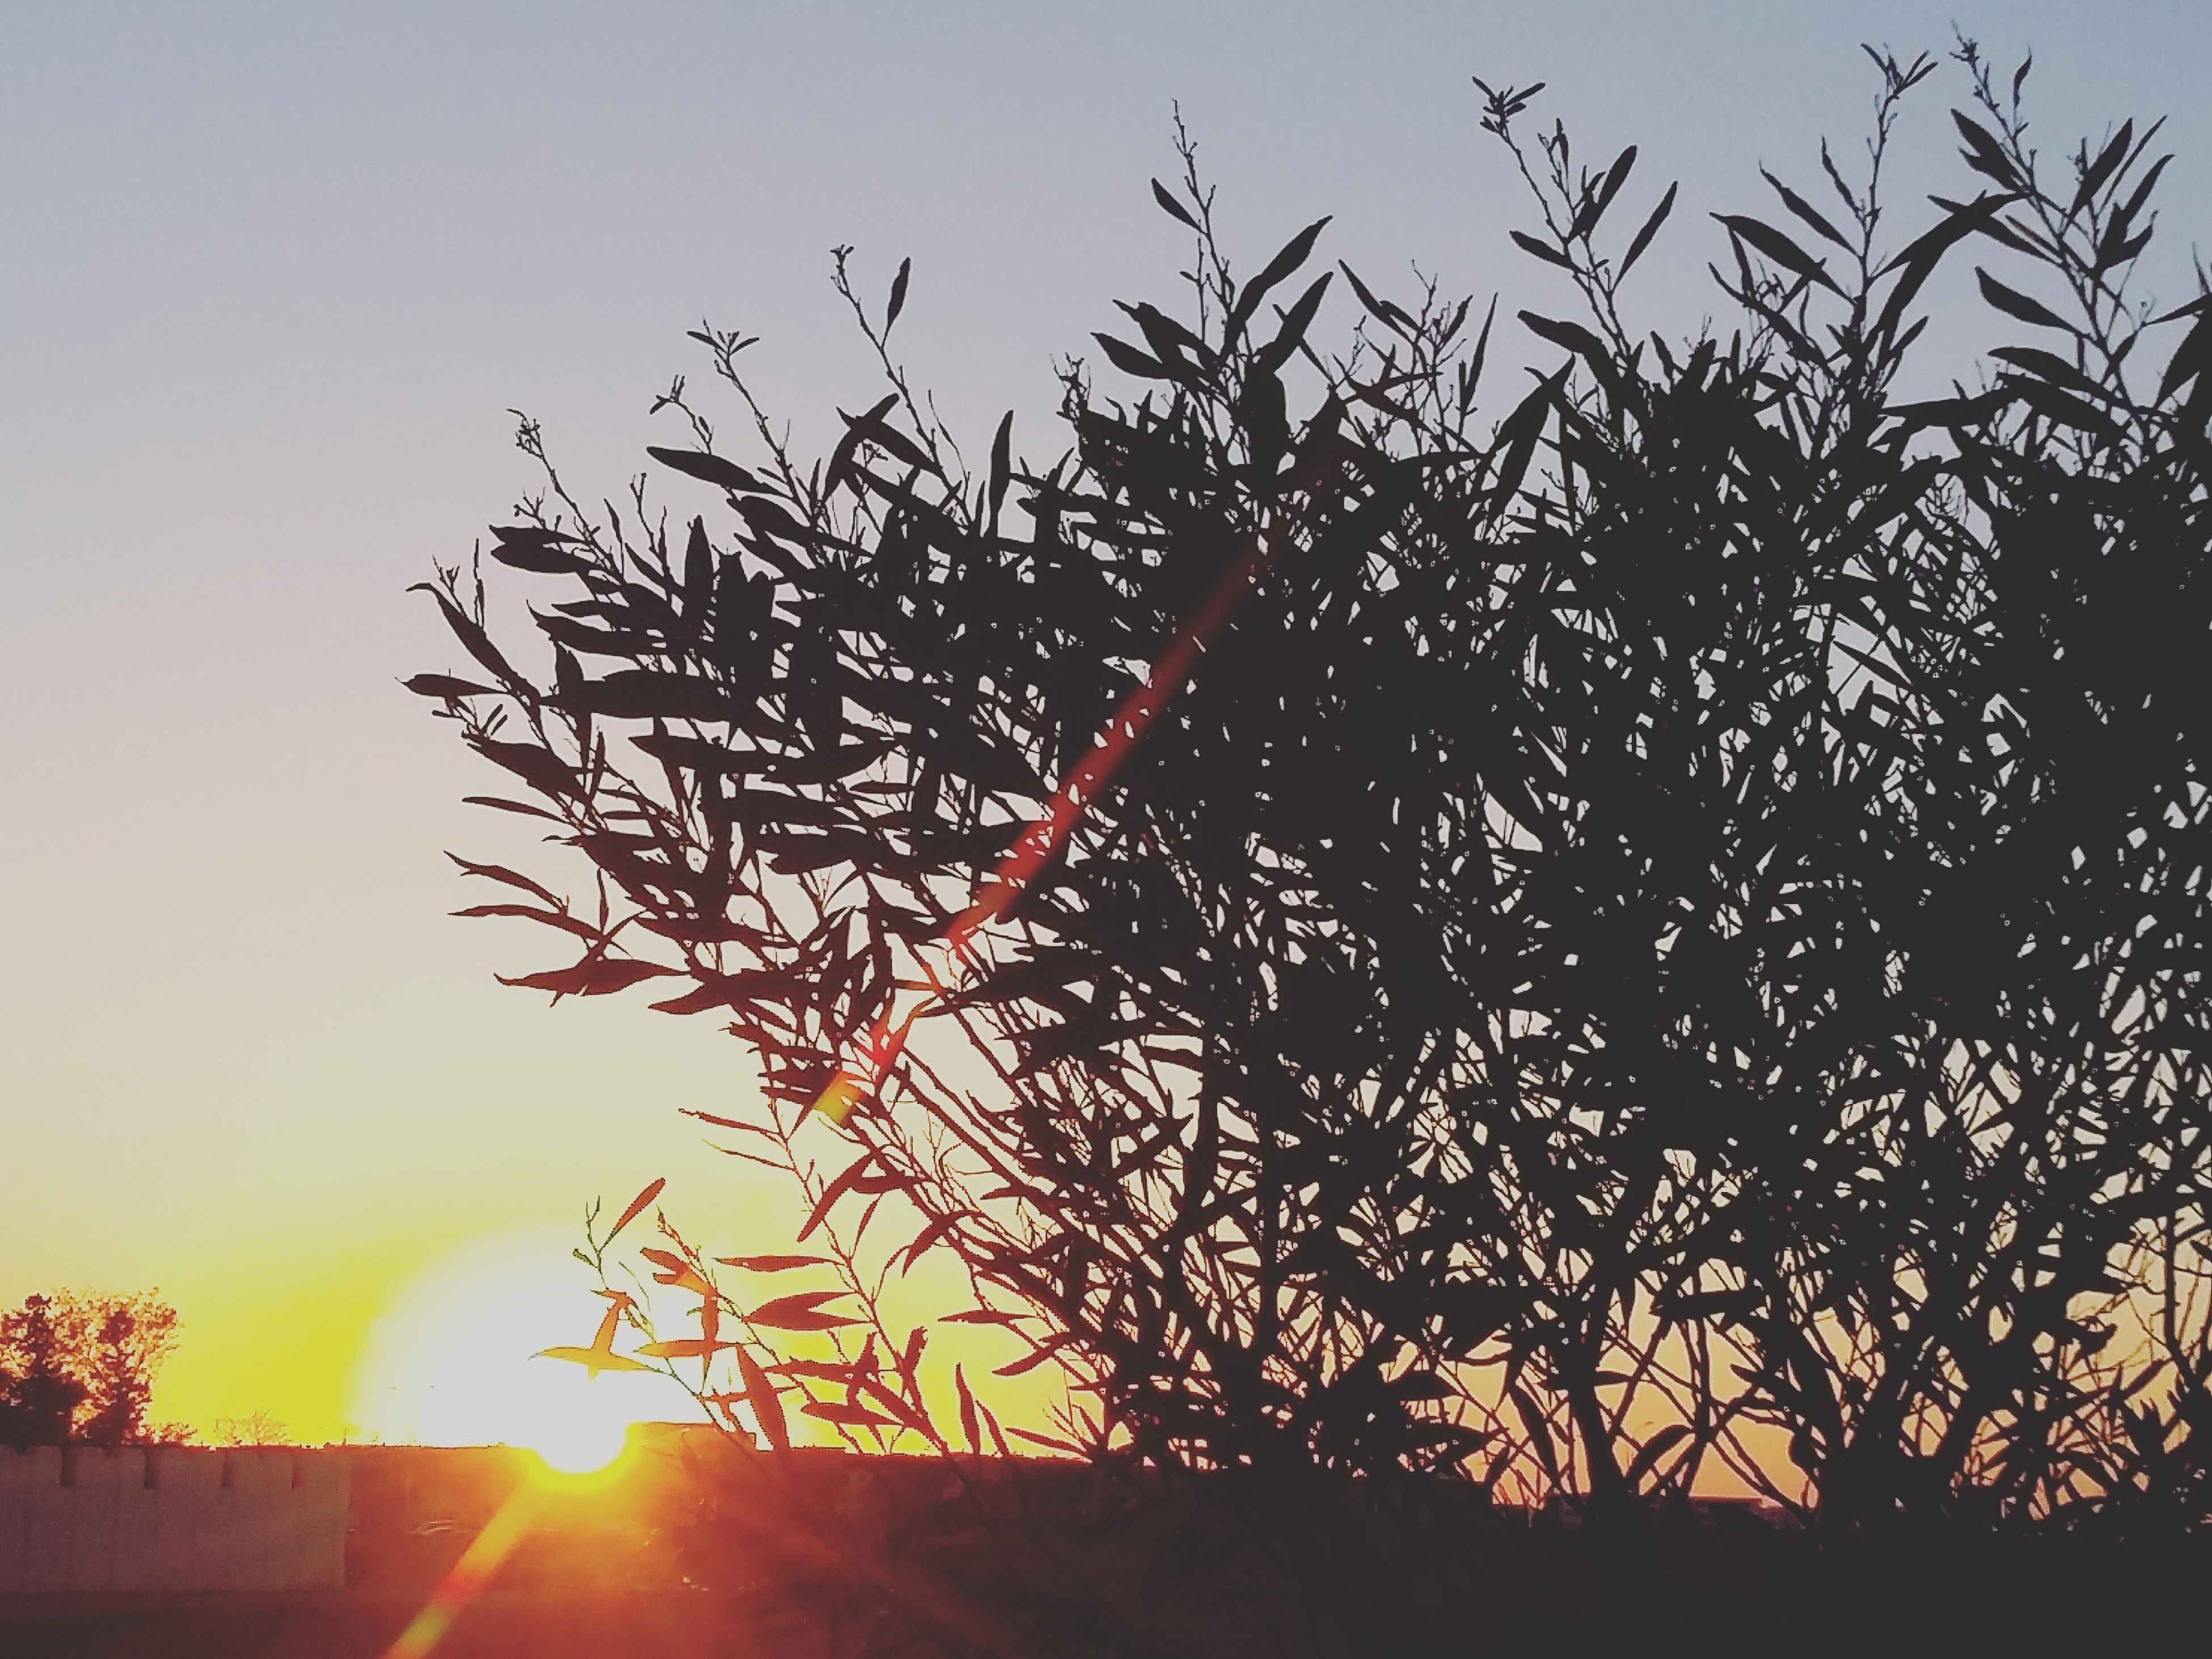 nature, sunset, tree, growth, beauty in nature, no people, silhouette, sky, outdoors, day